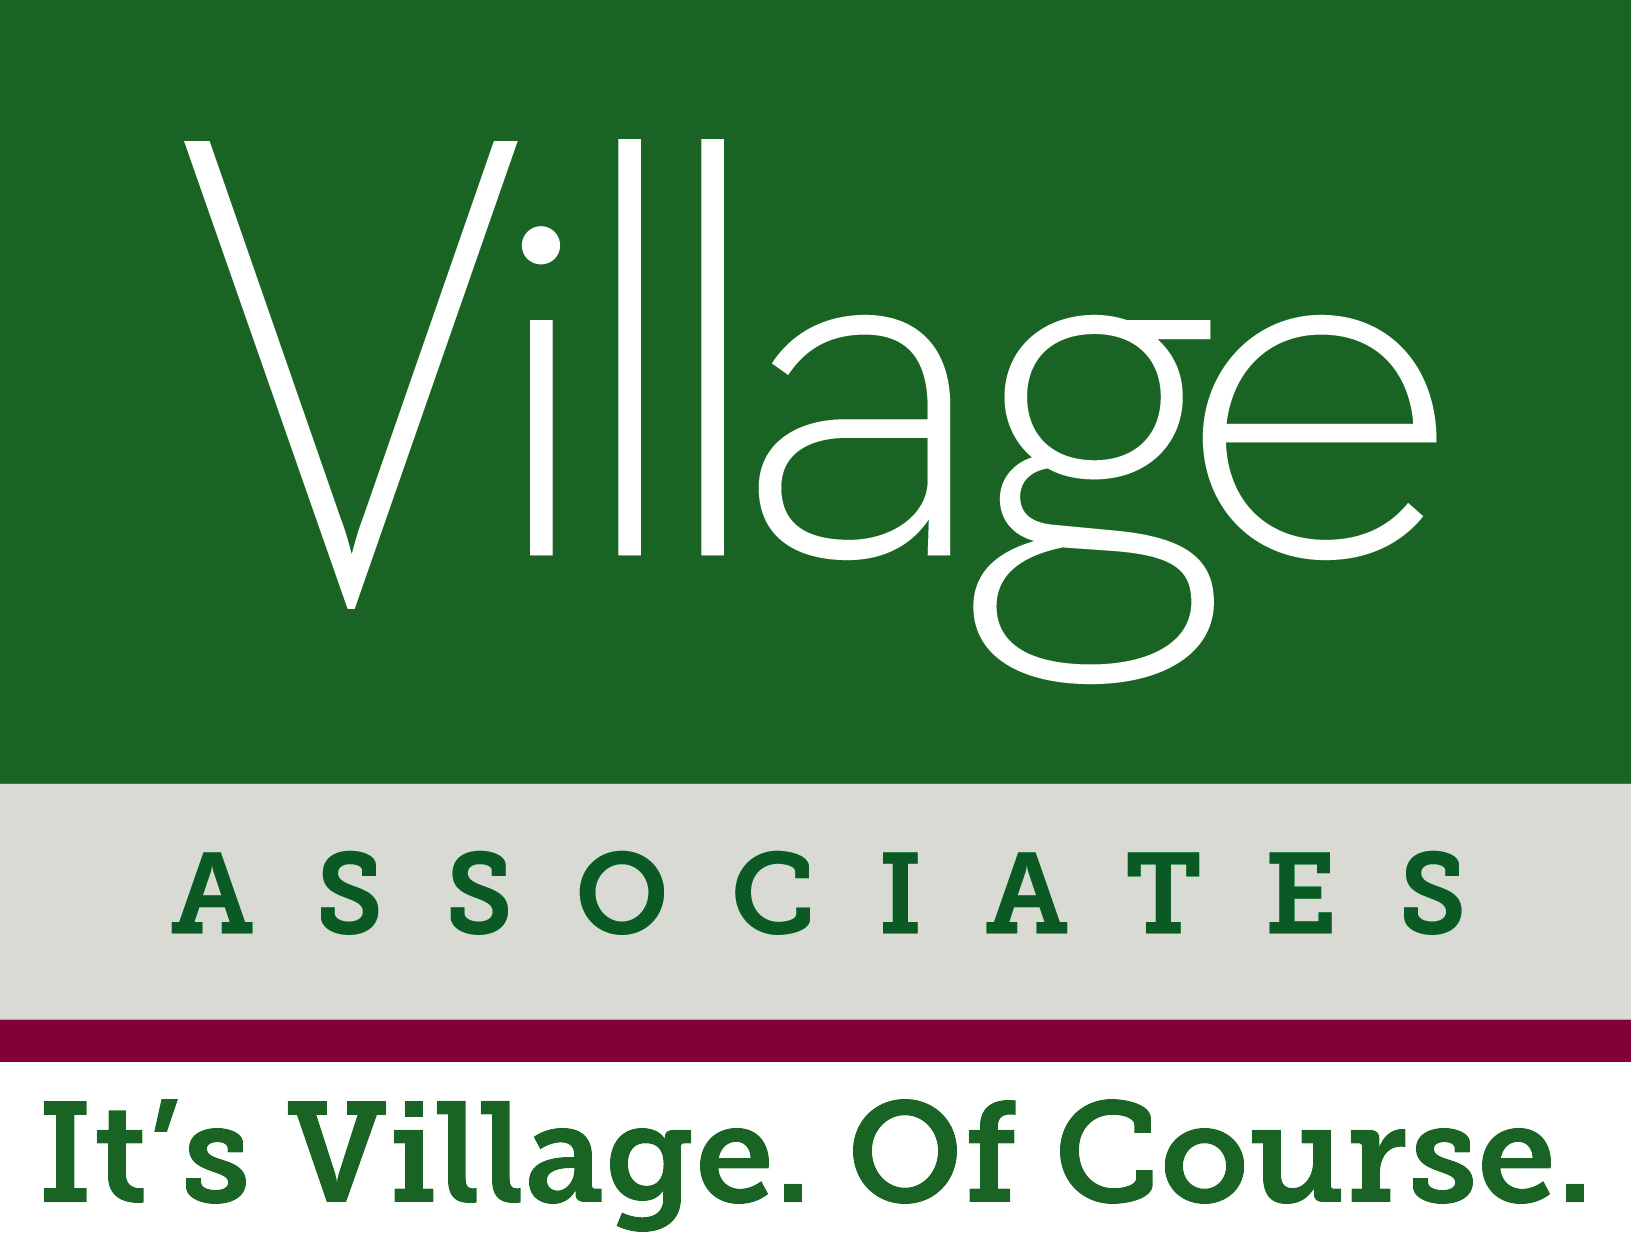 Village Associates - With TagLine